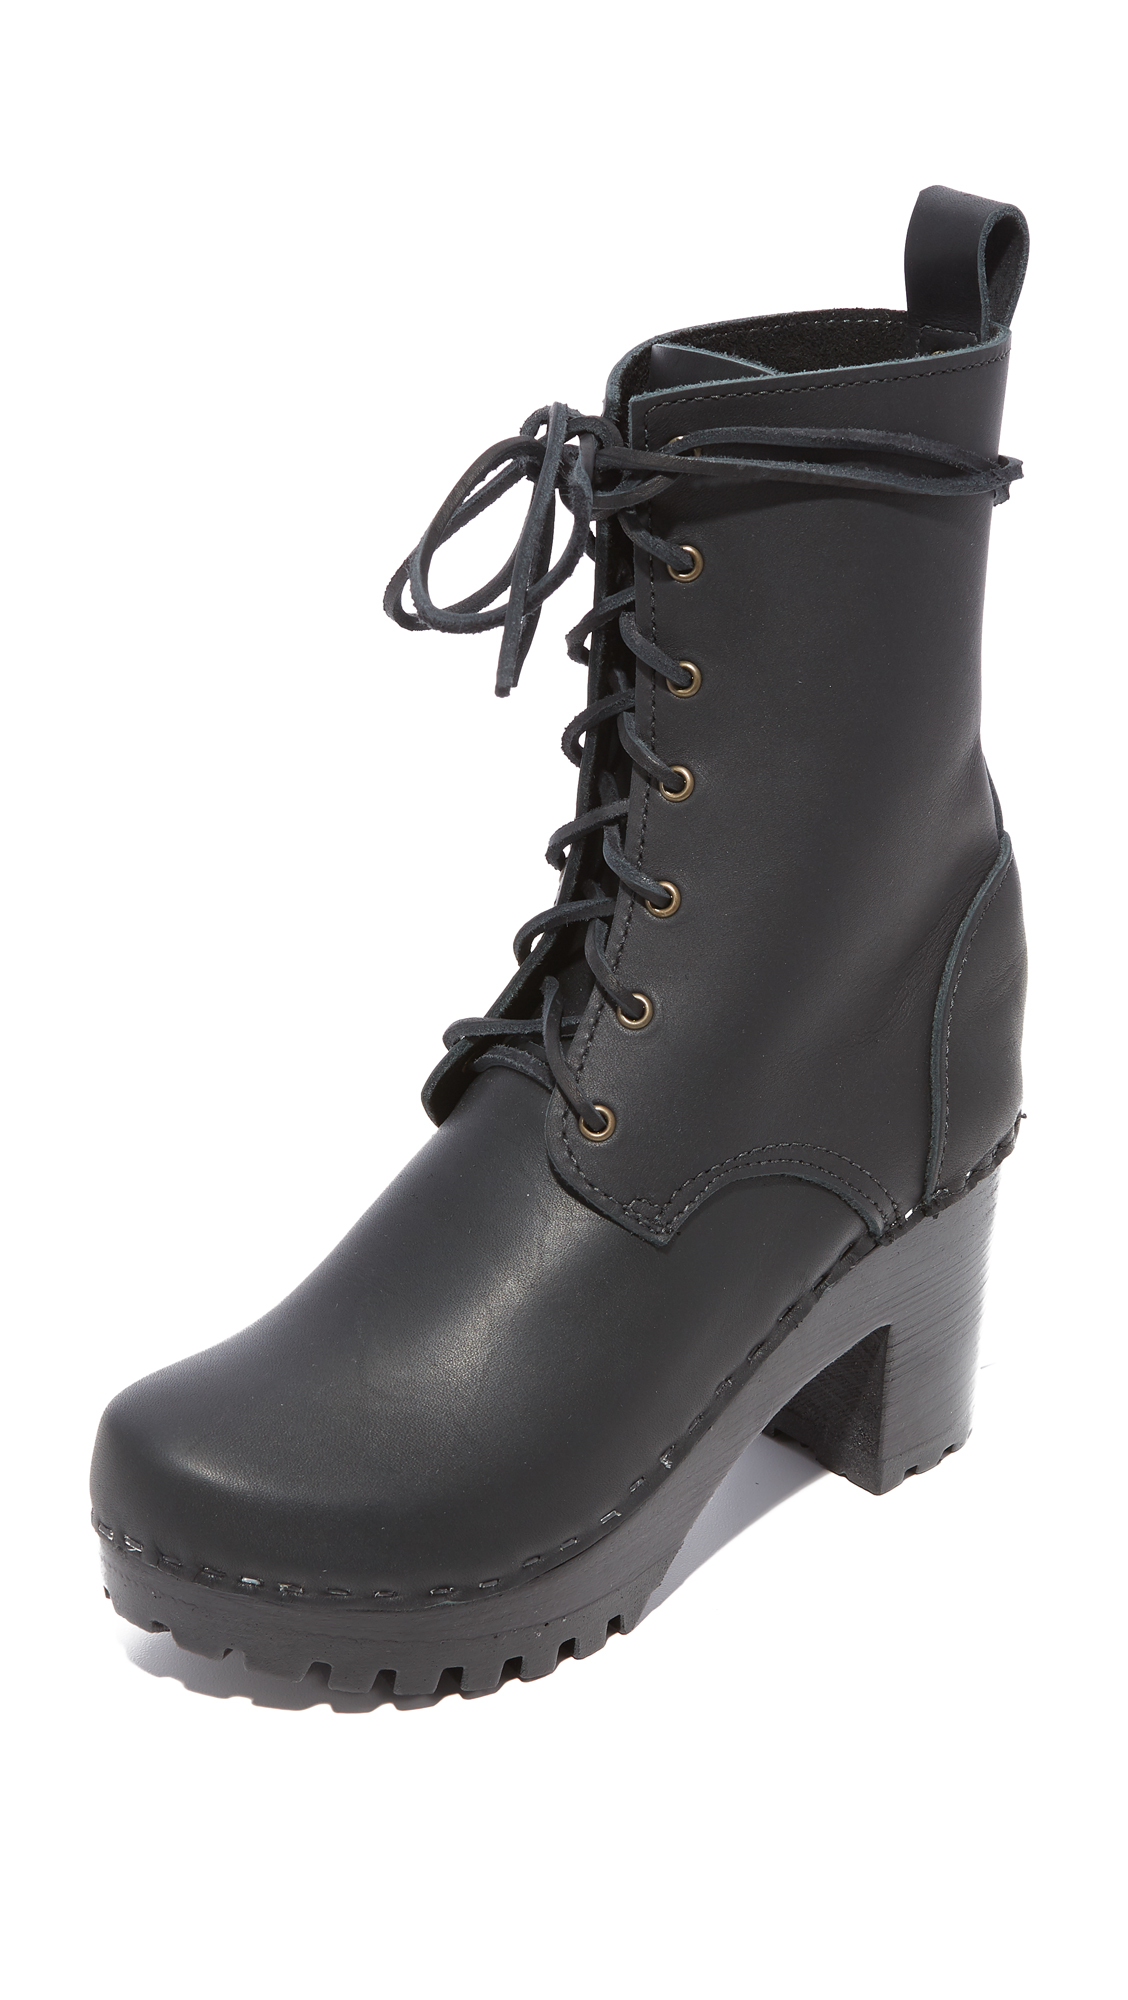 No.6 High Tread Combat Boots - Black/Black